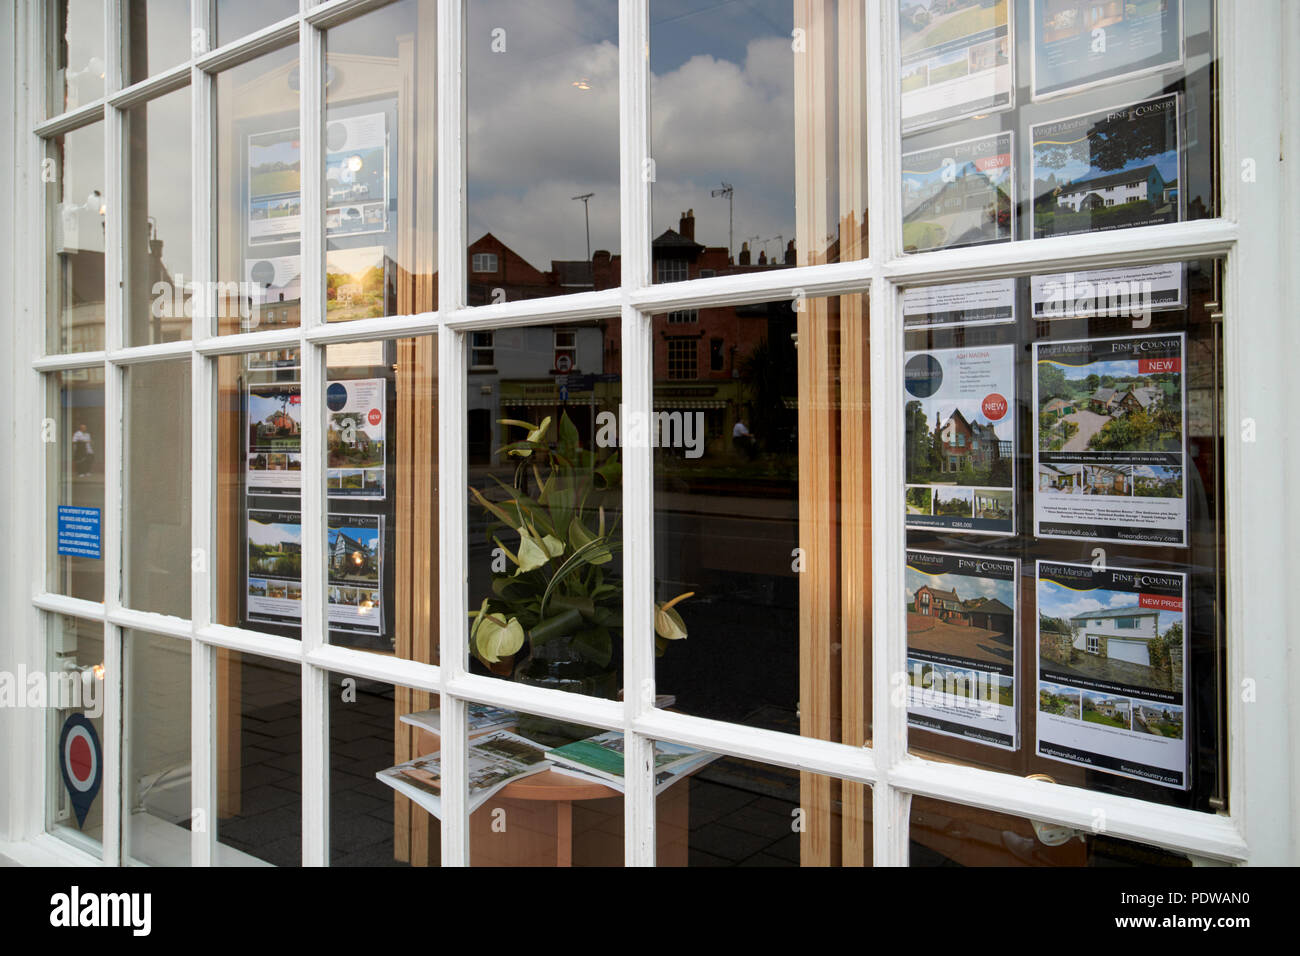 properties in the window of an upmarket estate agency window chester cheshire england uk - Stock Image